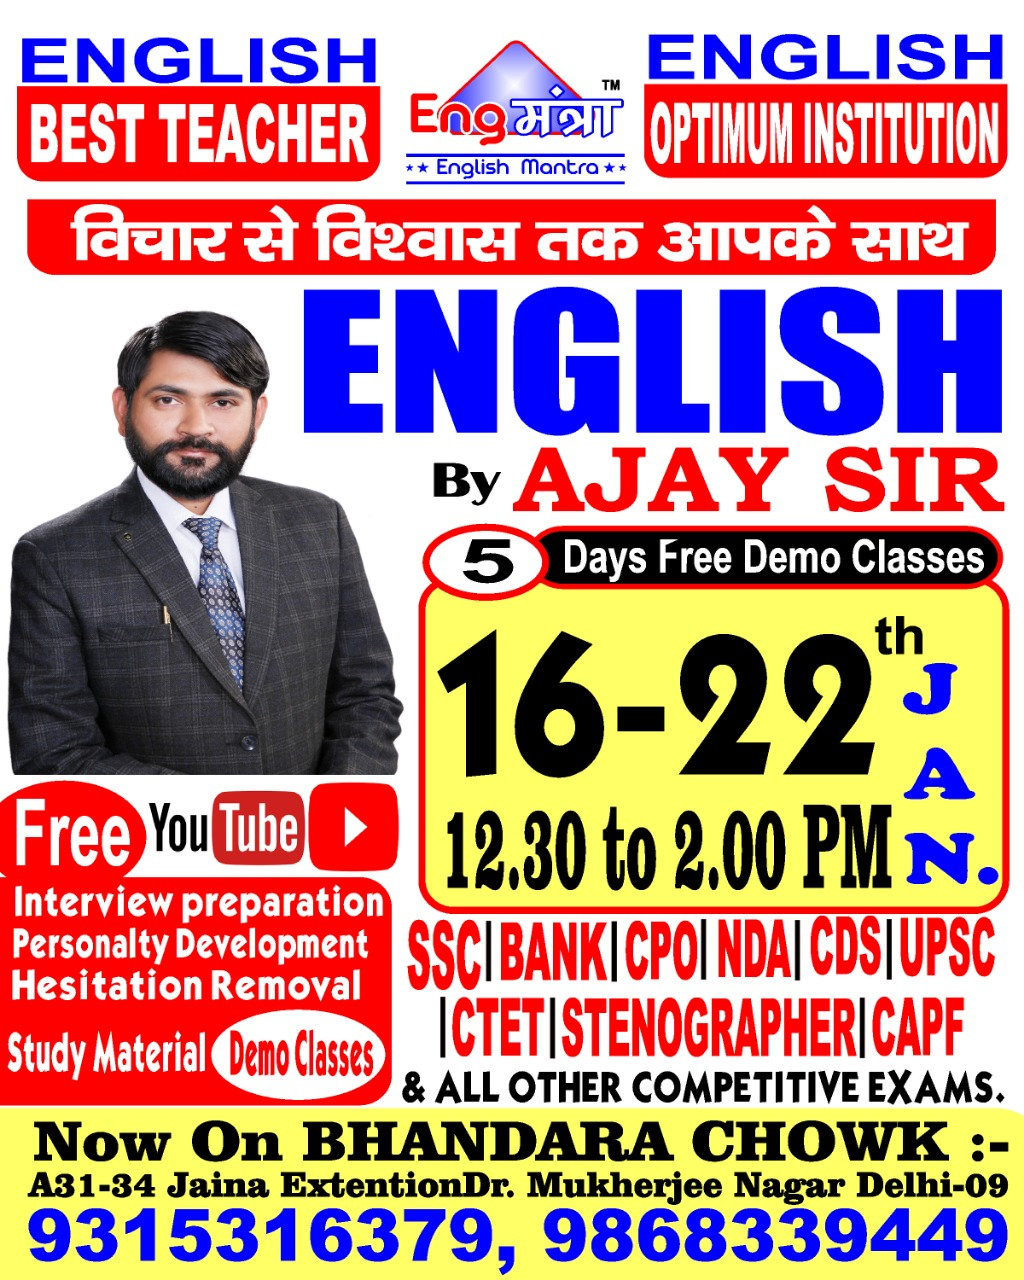 Session |37 English Mantra By Ajay Sir